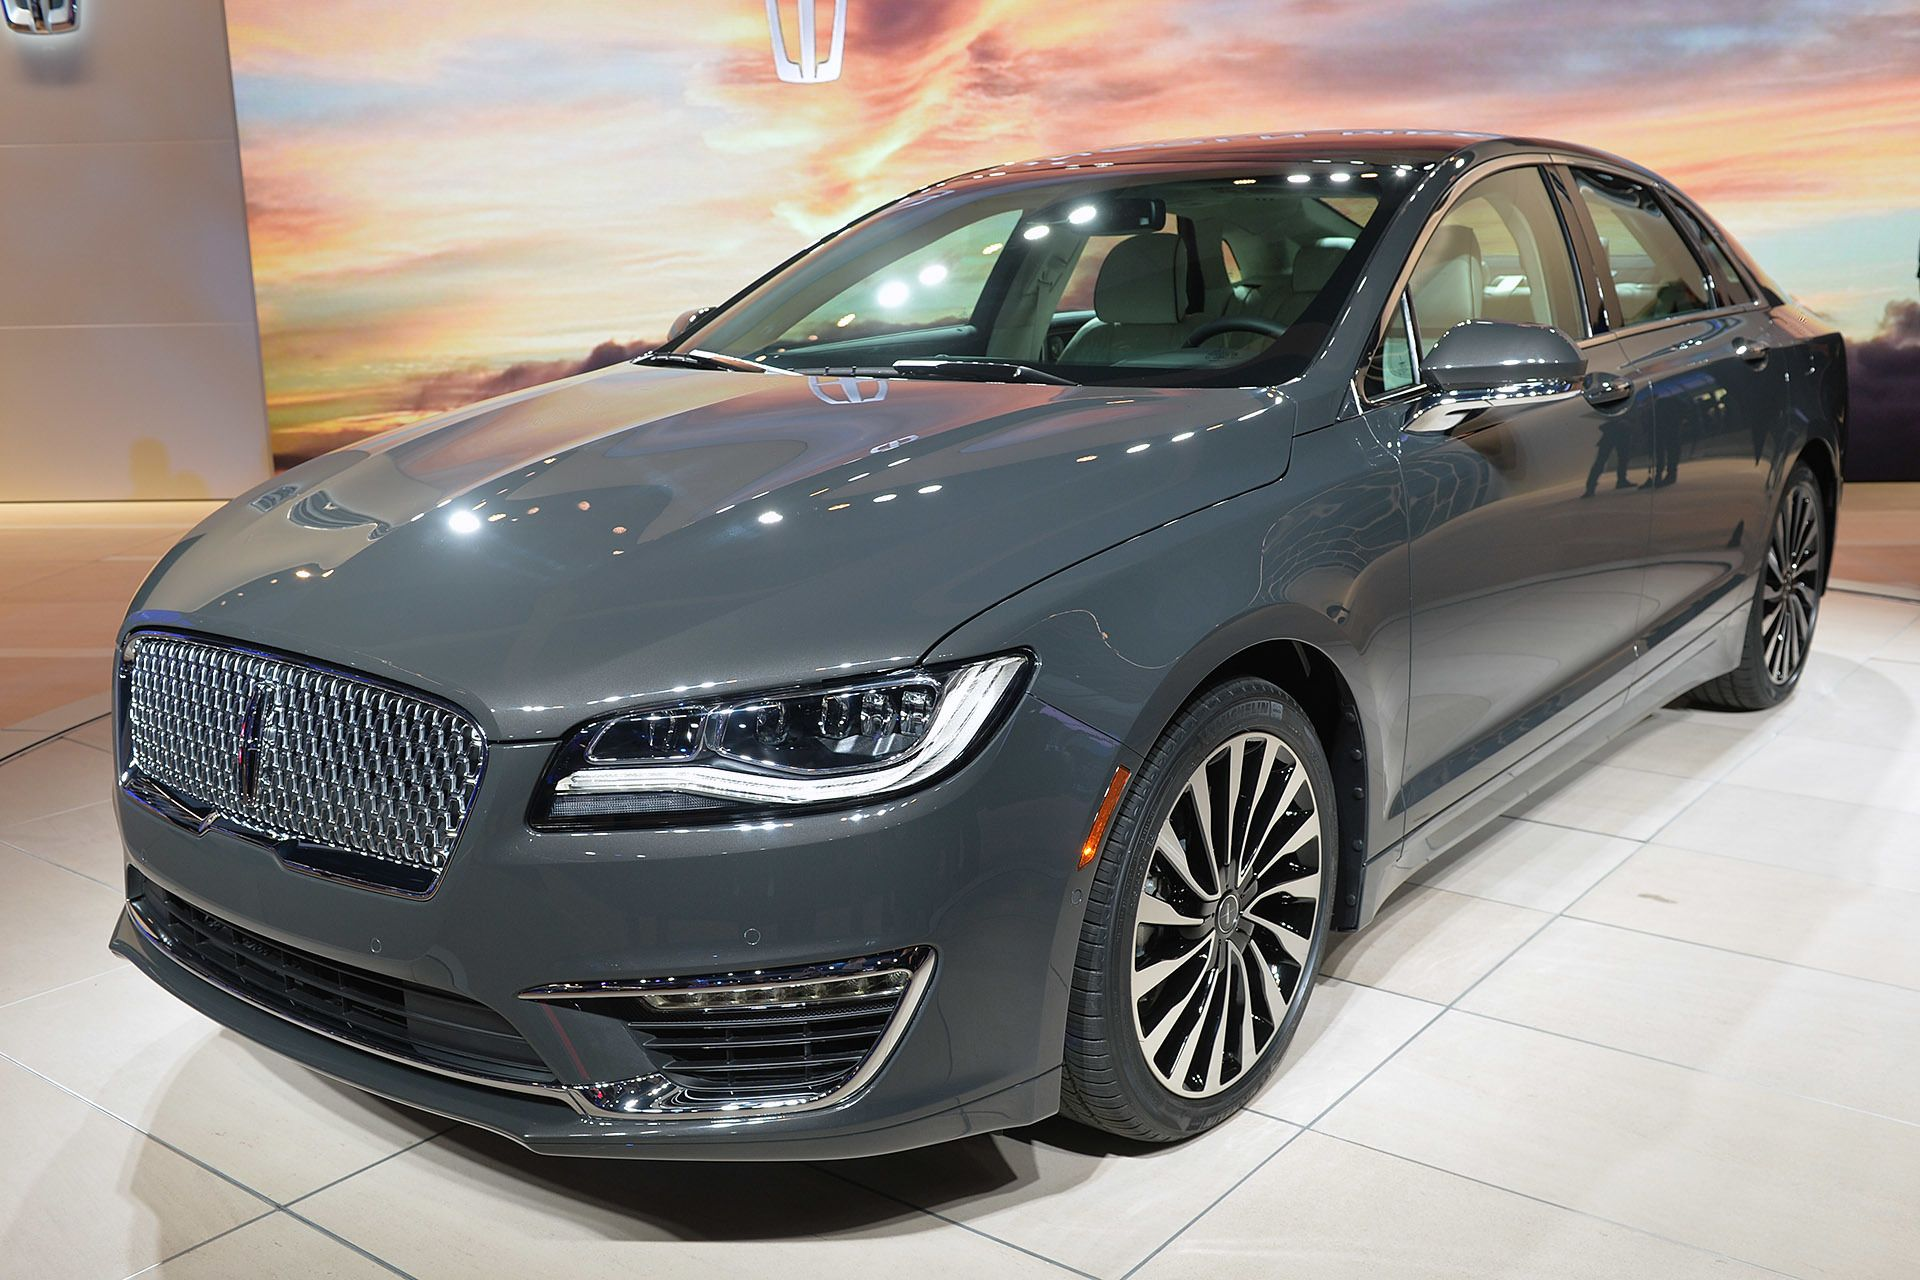 View detailed pictures that accompany our 2017 lincoln mkz la 2015 article with close up photos of exterior and interior features